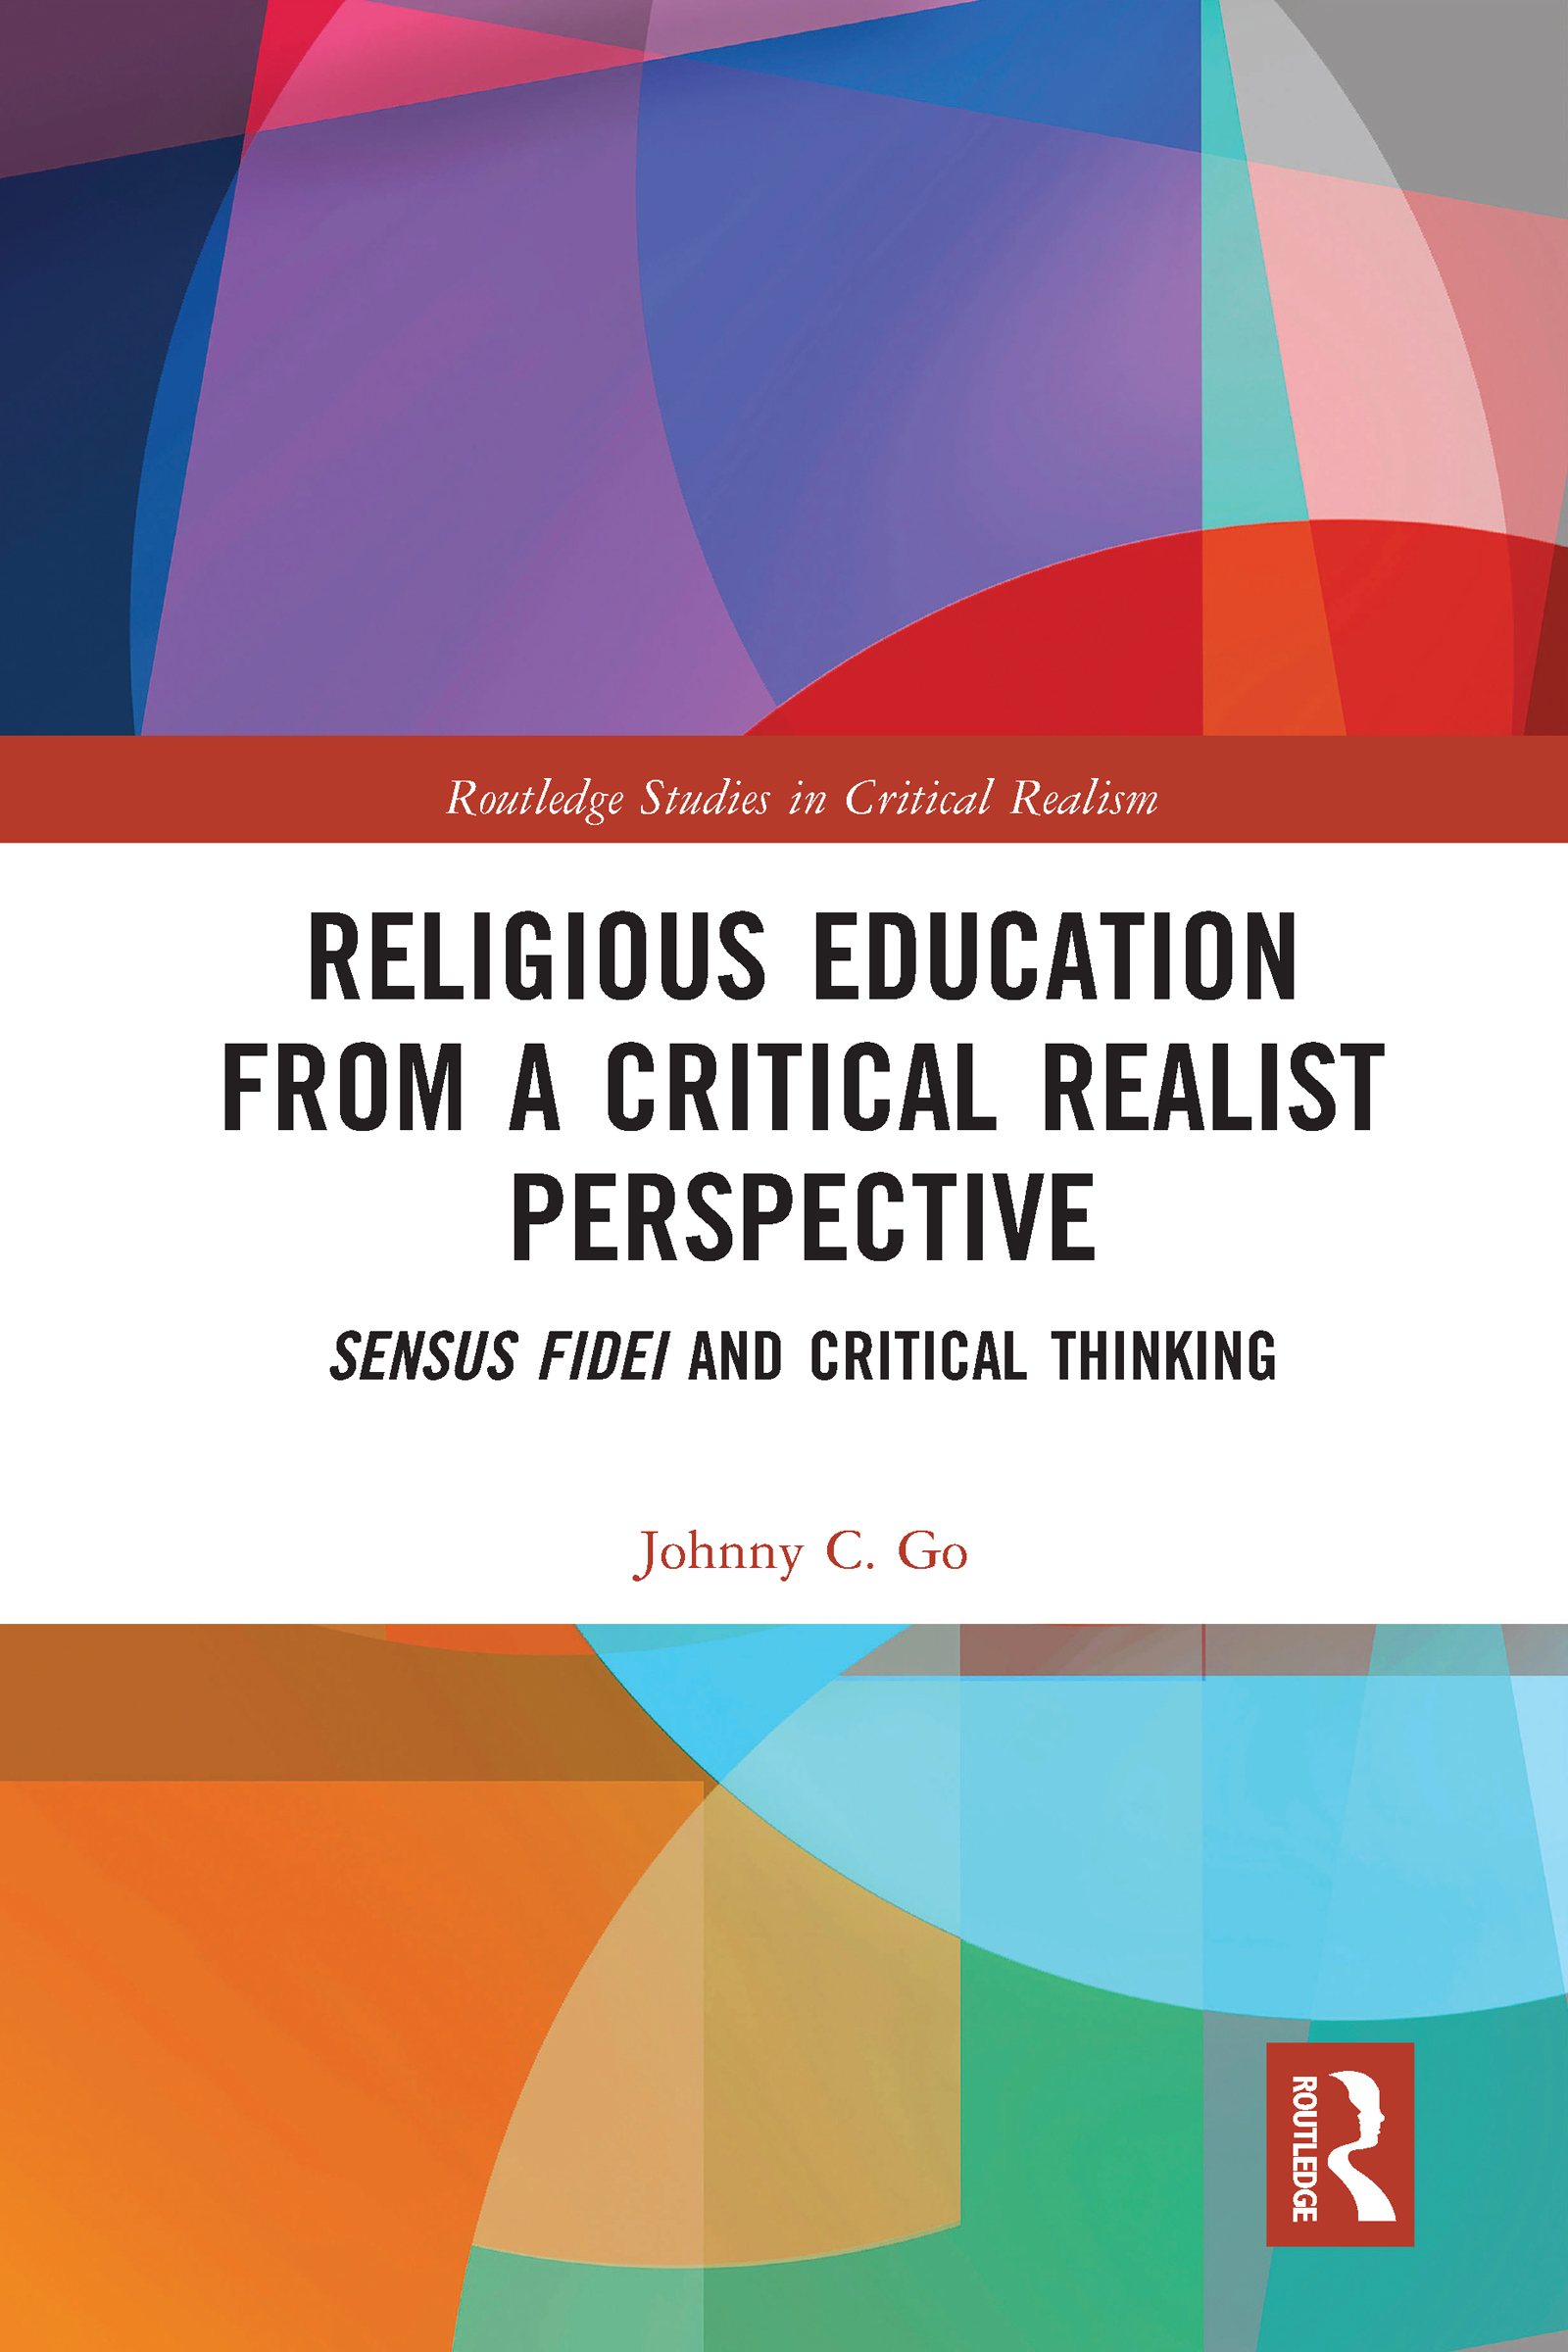 Religious Education from a Critical Realist Perspective